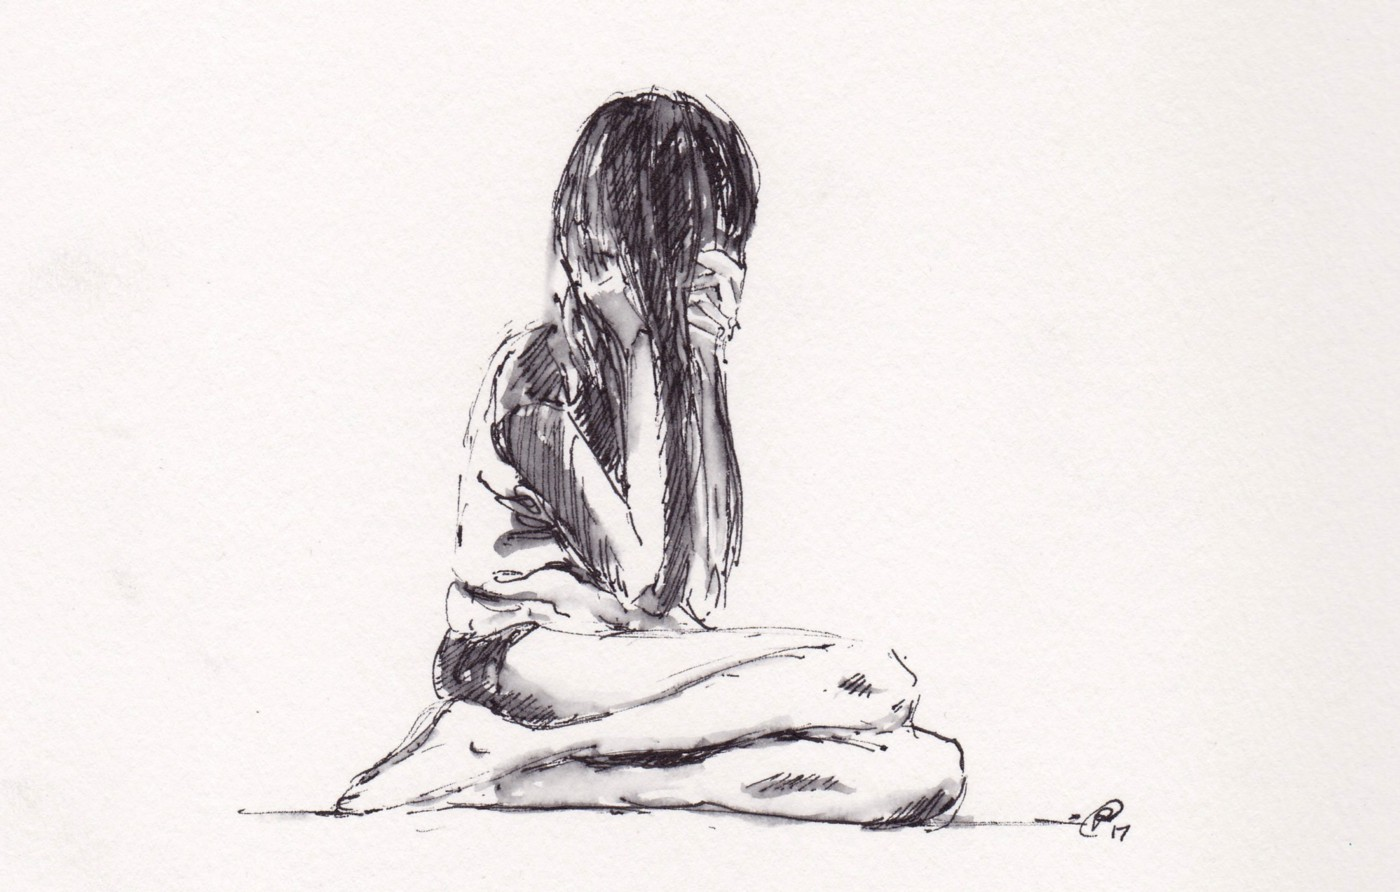 Ink drawing of a woman hiding behind her hair.